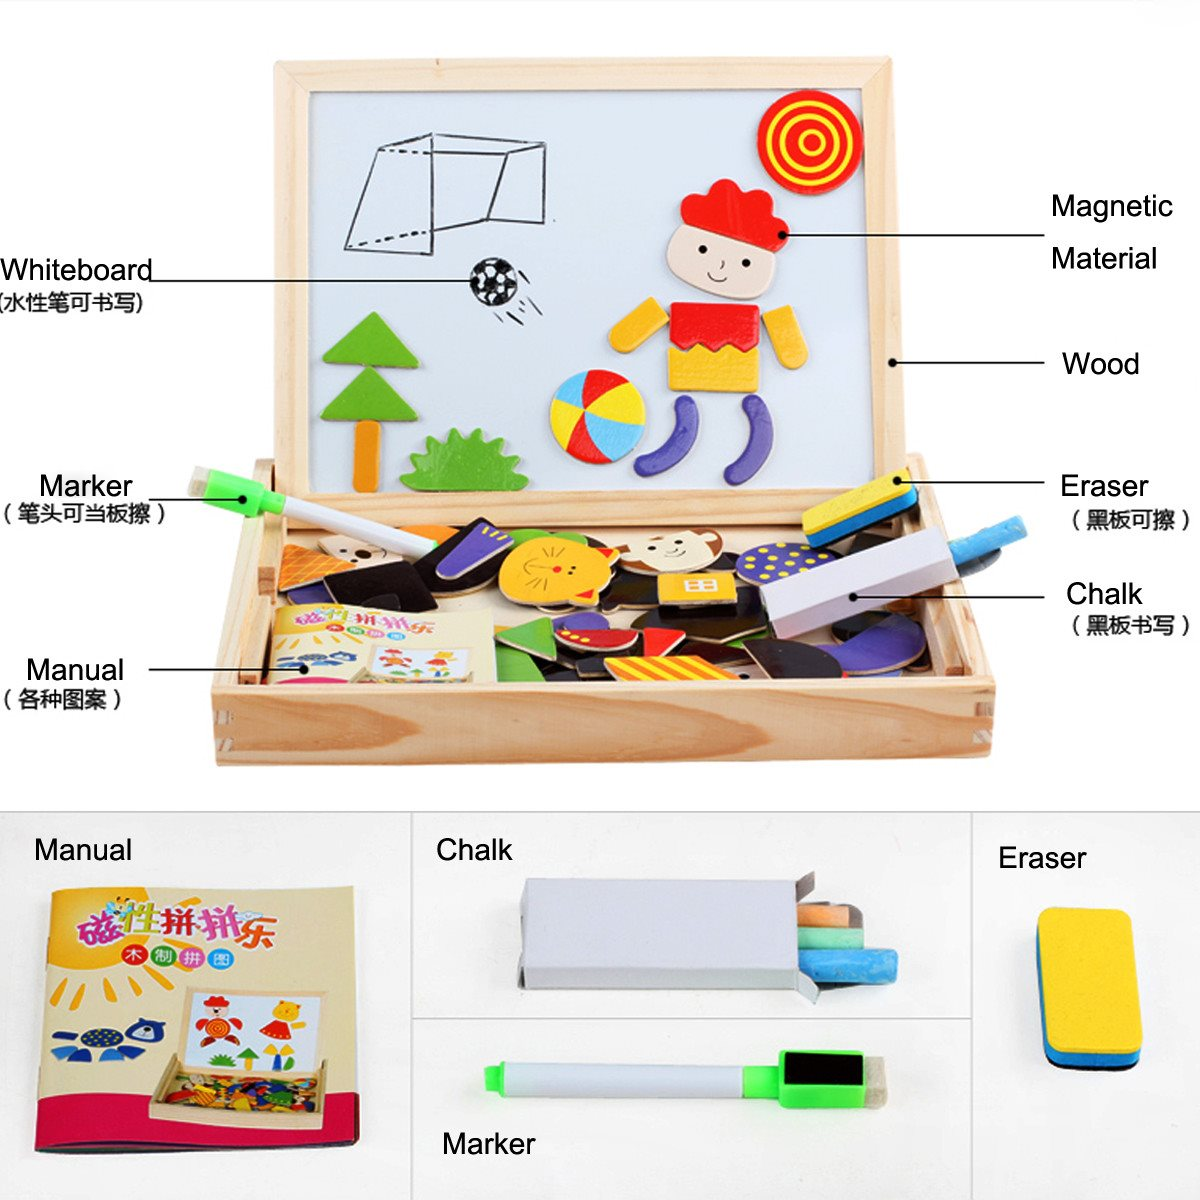 New-Arrival-Drawing-Writing-Board-Magnetic-Puzzle-Double-Easel-Kid-Wooden-Toy-Gift-Children-Intelligence-Development-Toy-5